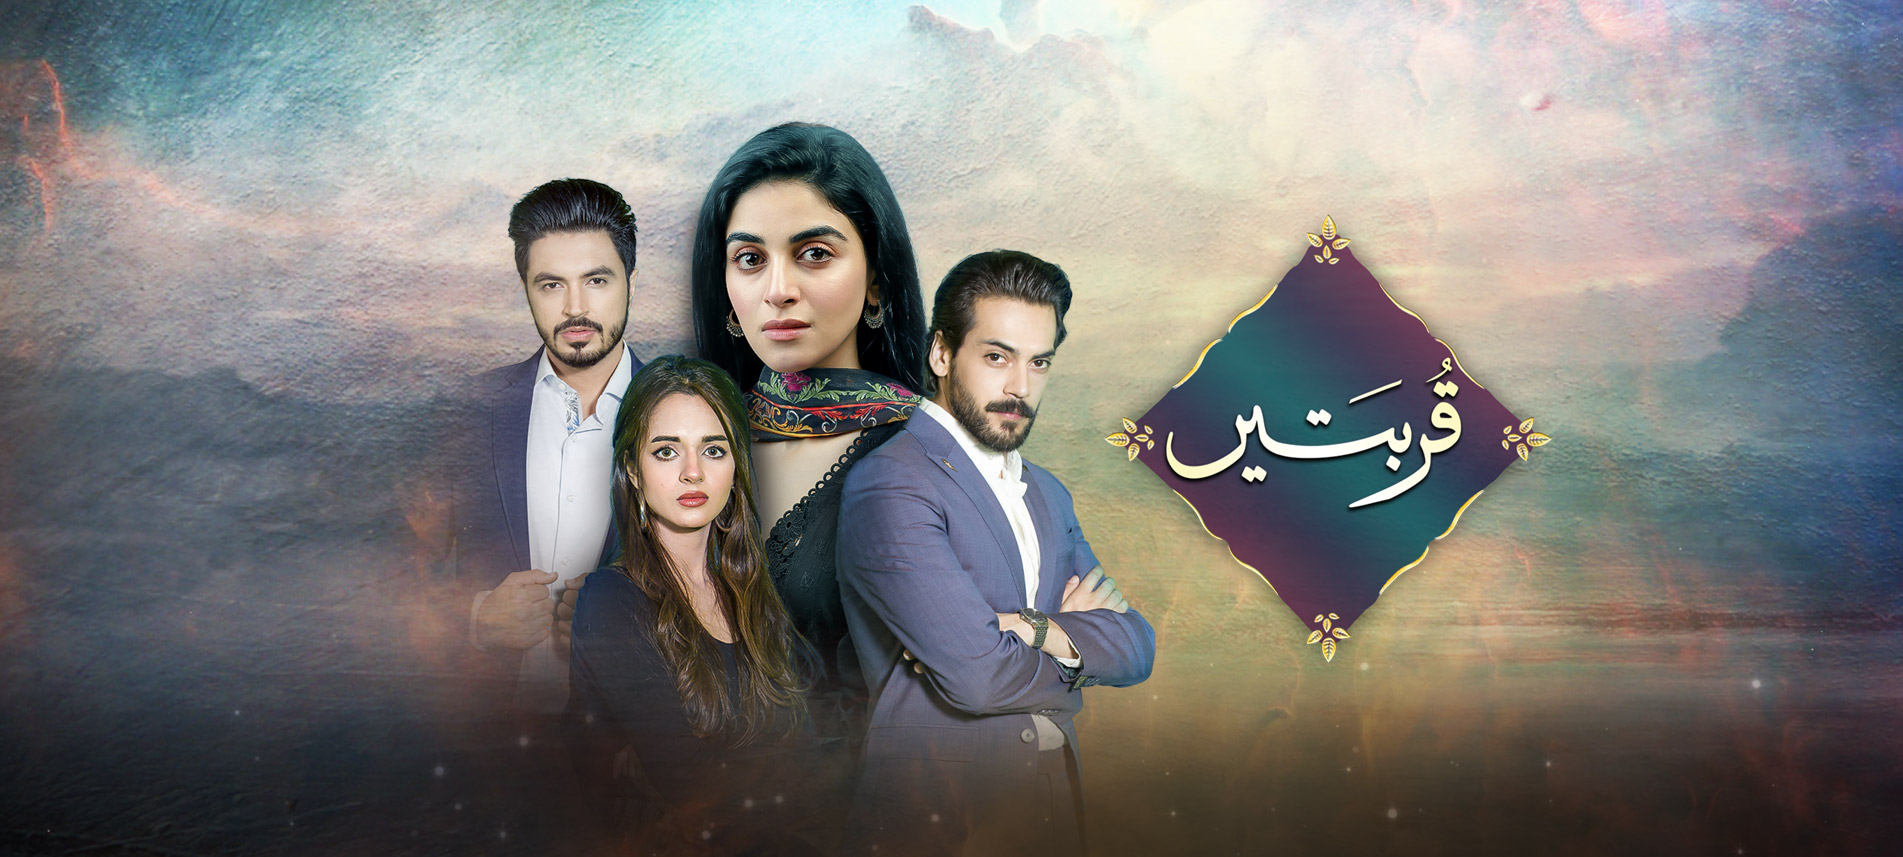 Watch Qurbatain Episode 8 By Hum Tv - 28th July 2020